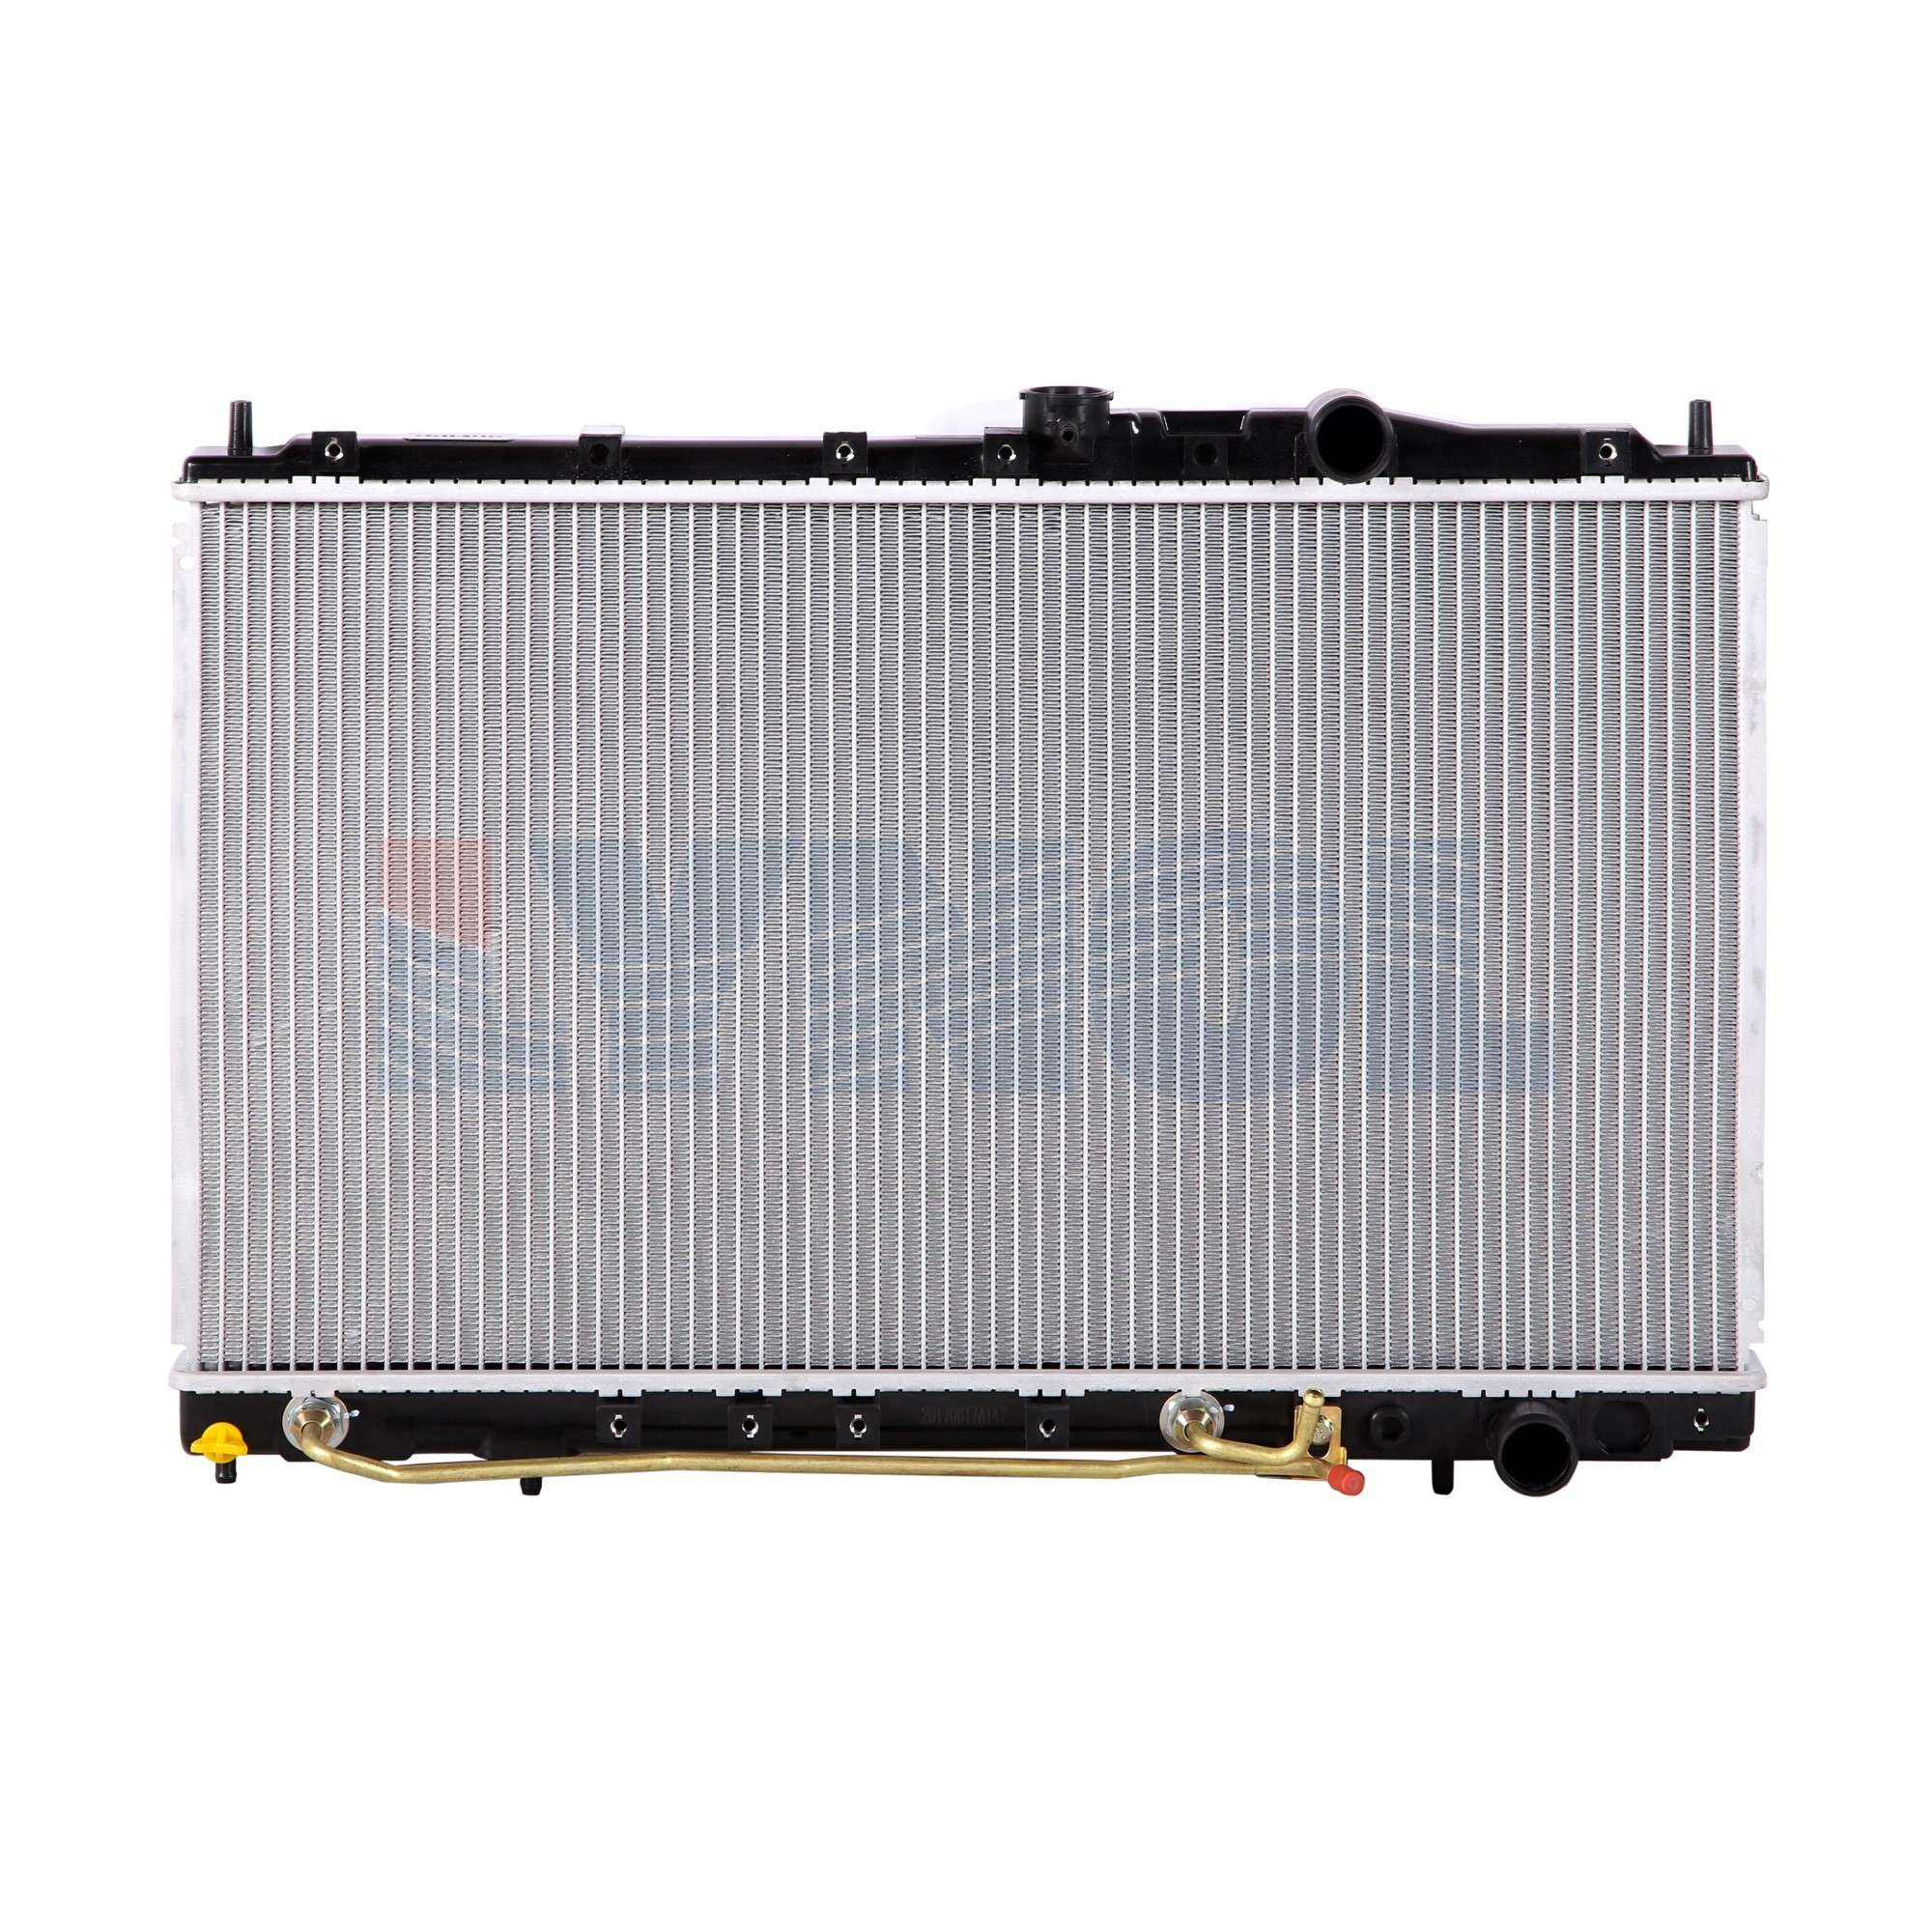 LR1393 - RADIATOR  - 93-96 MIRAGE 93-96 DODGE COLT 93-96 EAGLE SUMMIT